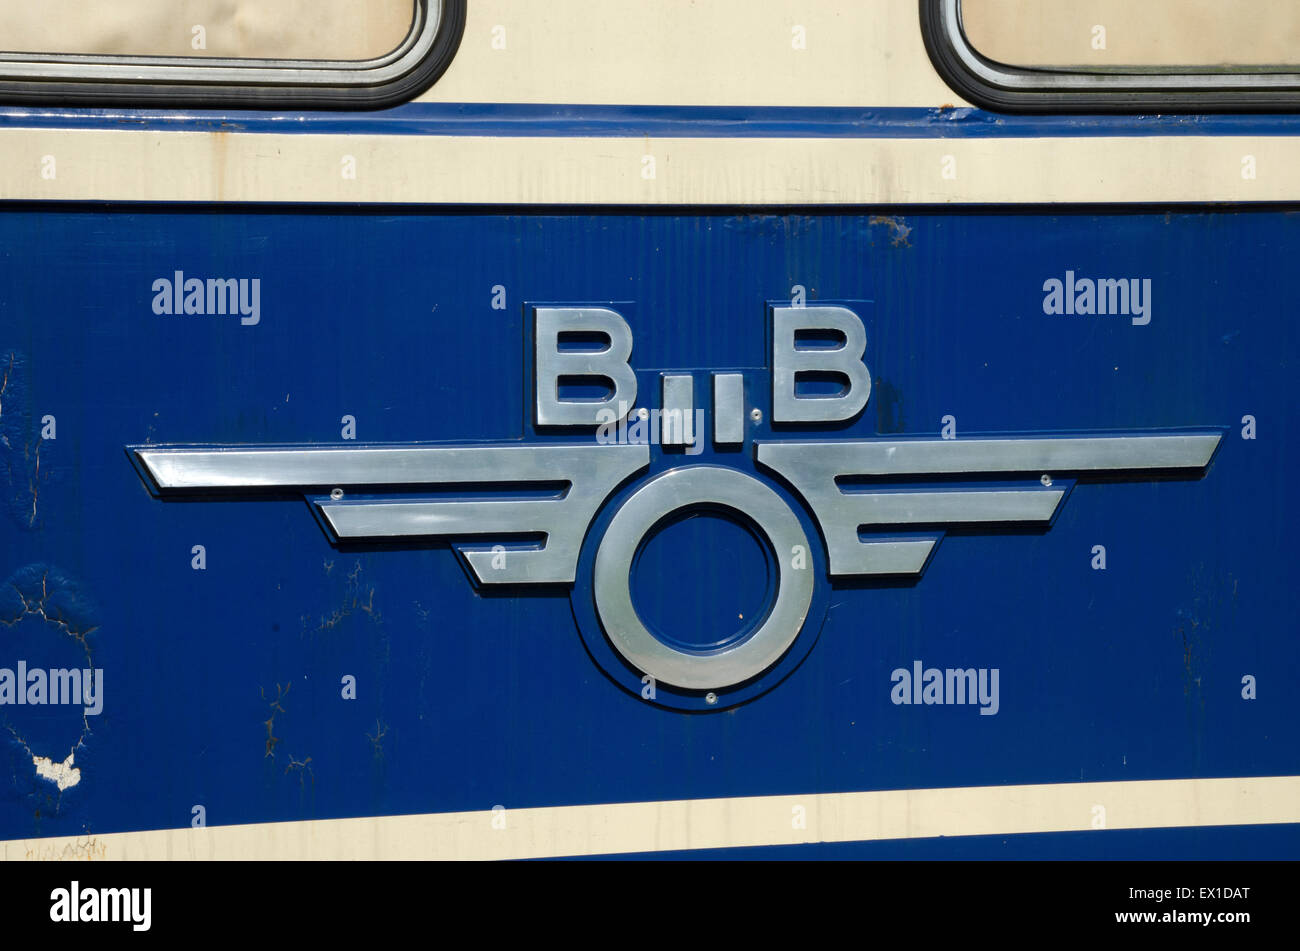 das heizhaus austrian national railway museum train nameplates builder's plates crests number plates - Stock Image